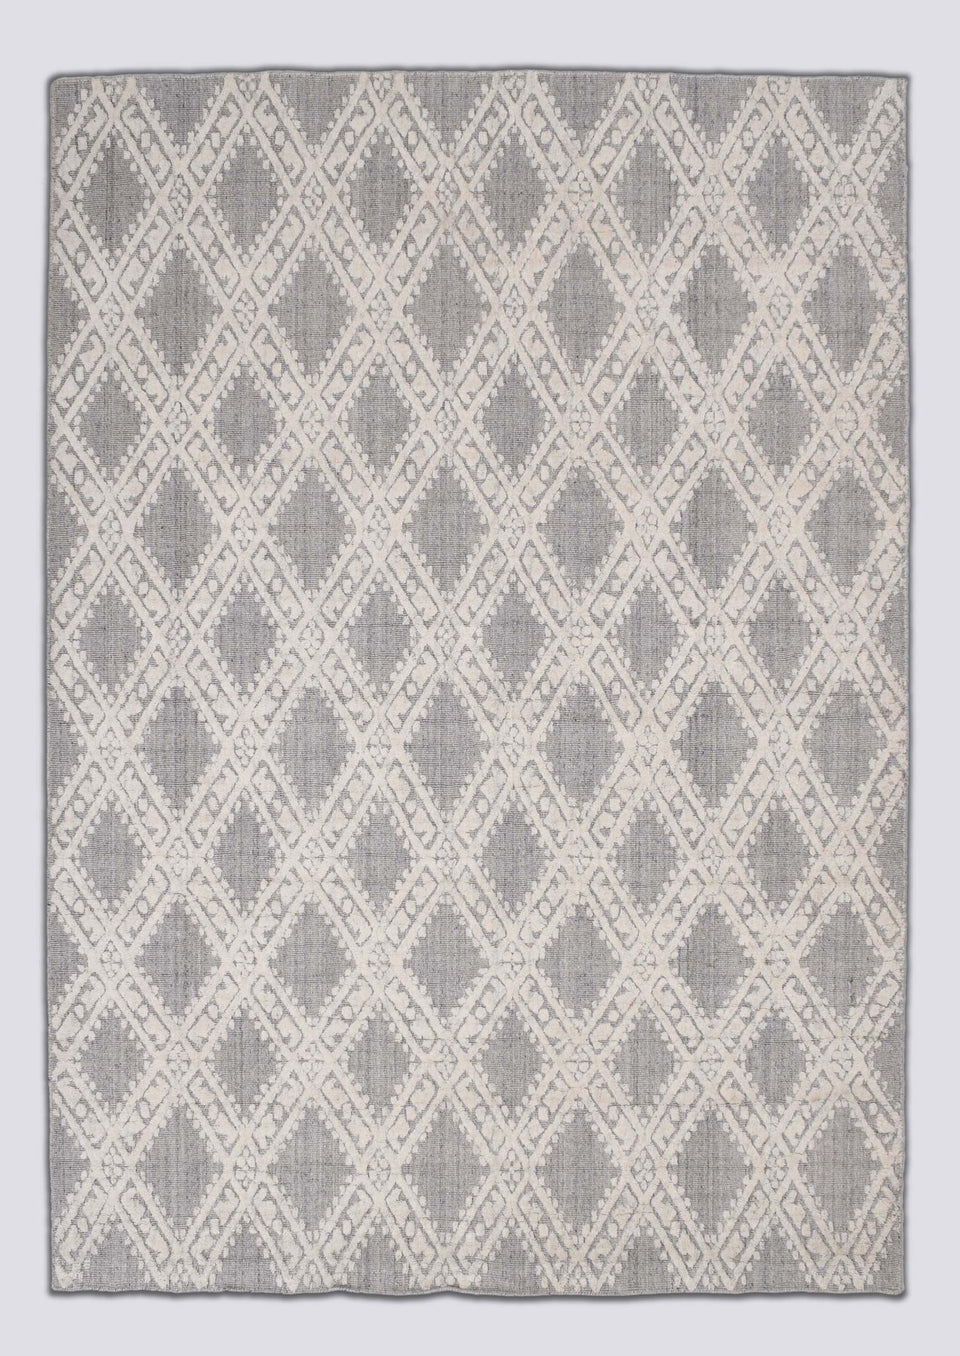 Stilo-Natural Wool & Wool Viscose Mix Handloom Jacquard Carpet 7.5 x 5